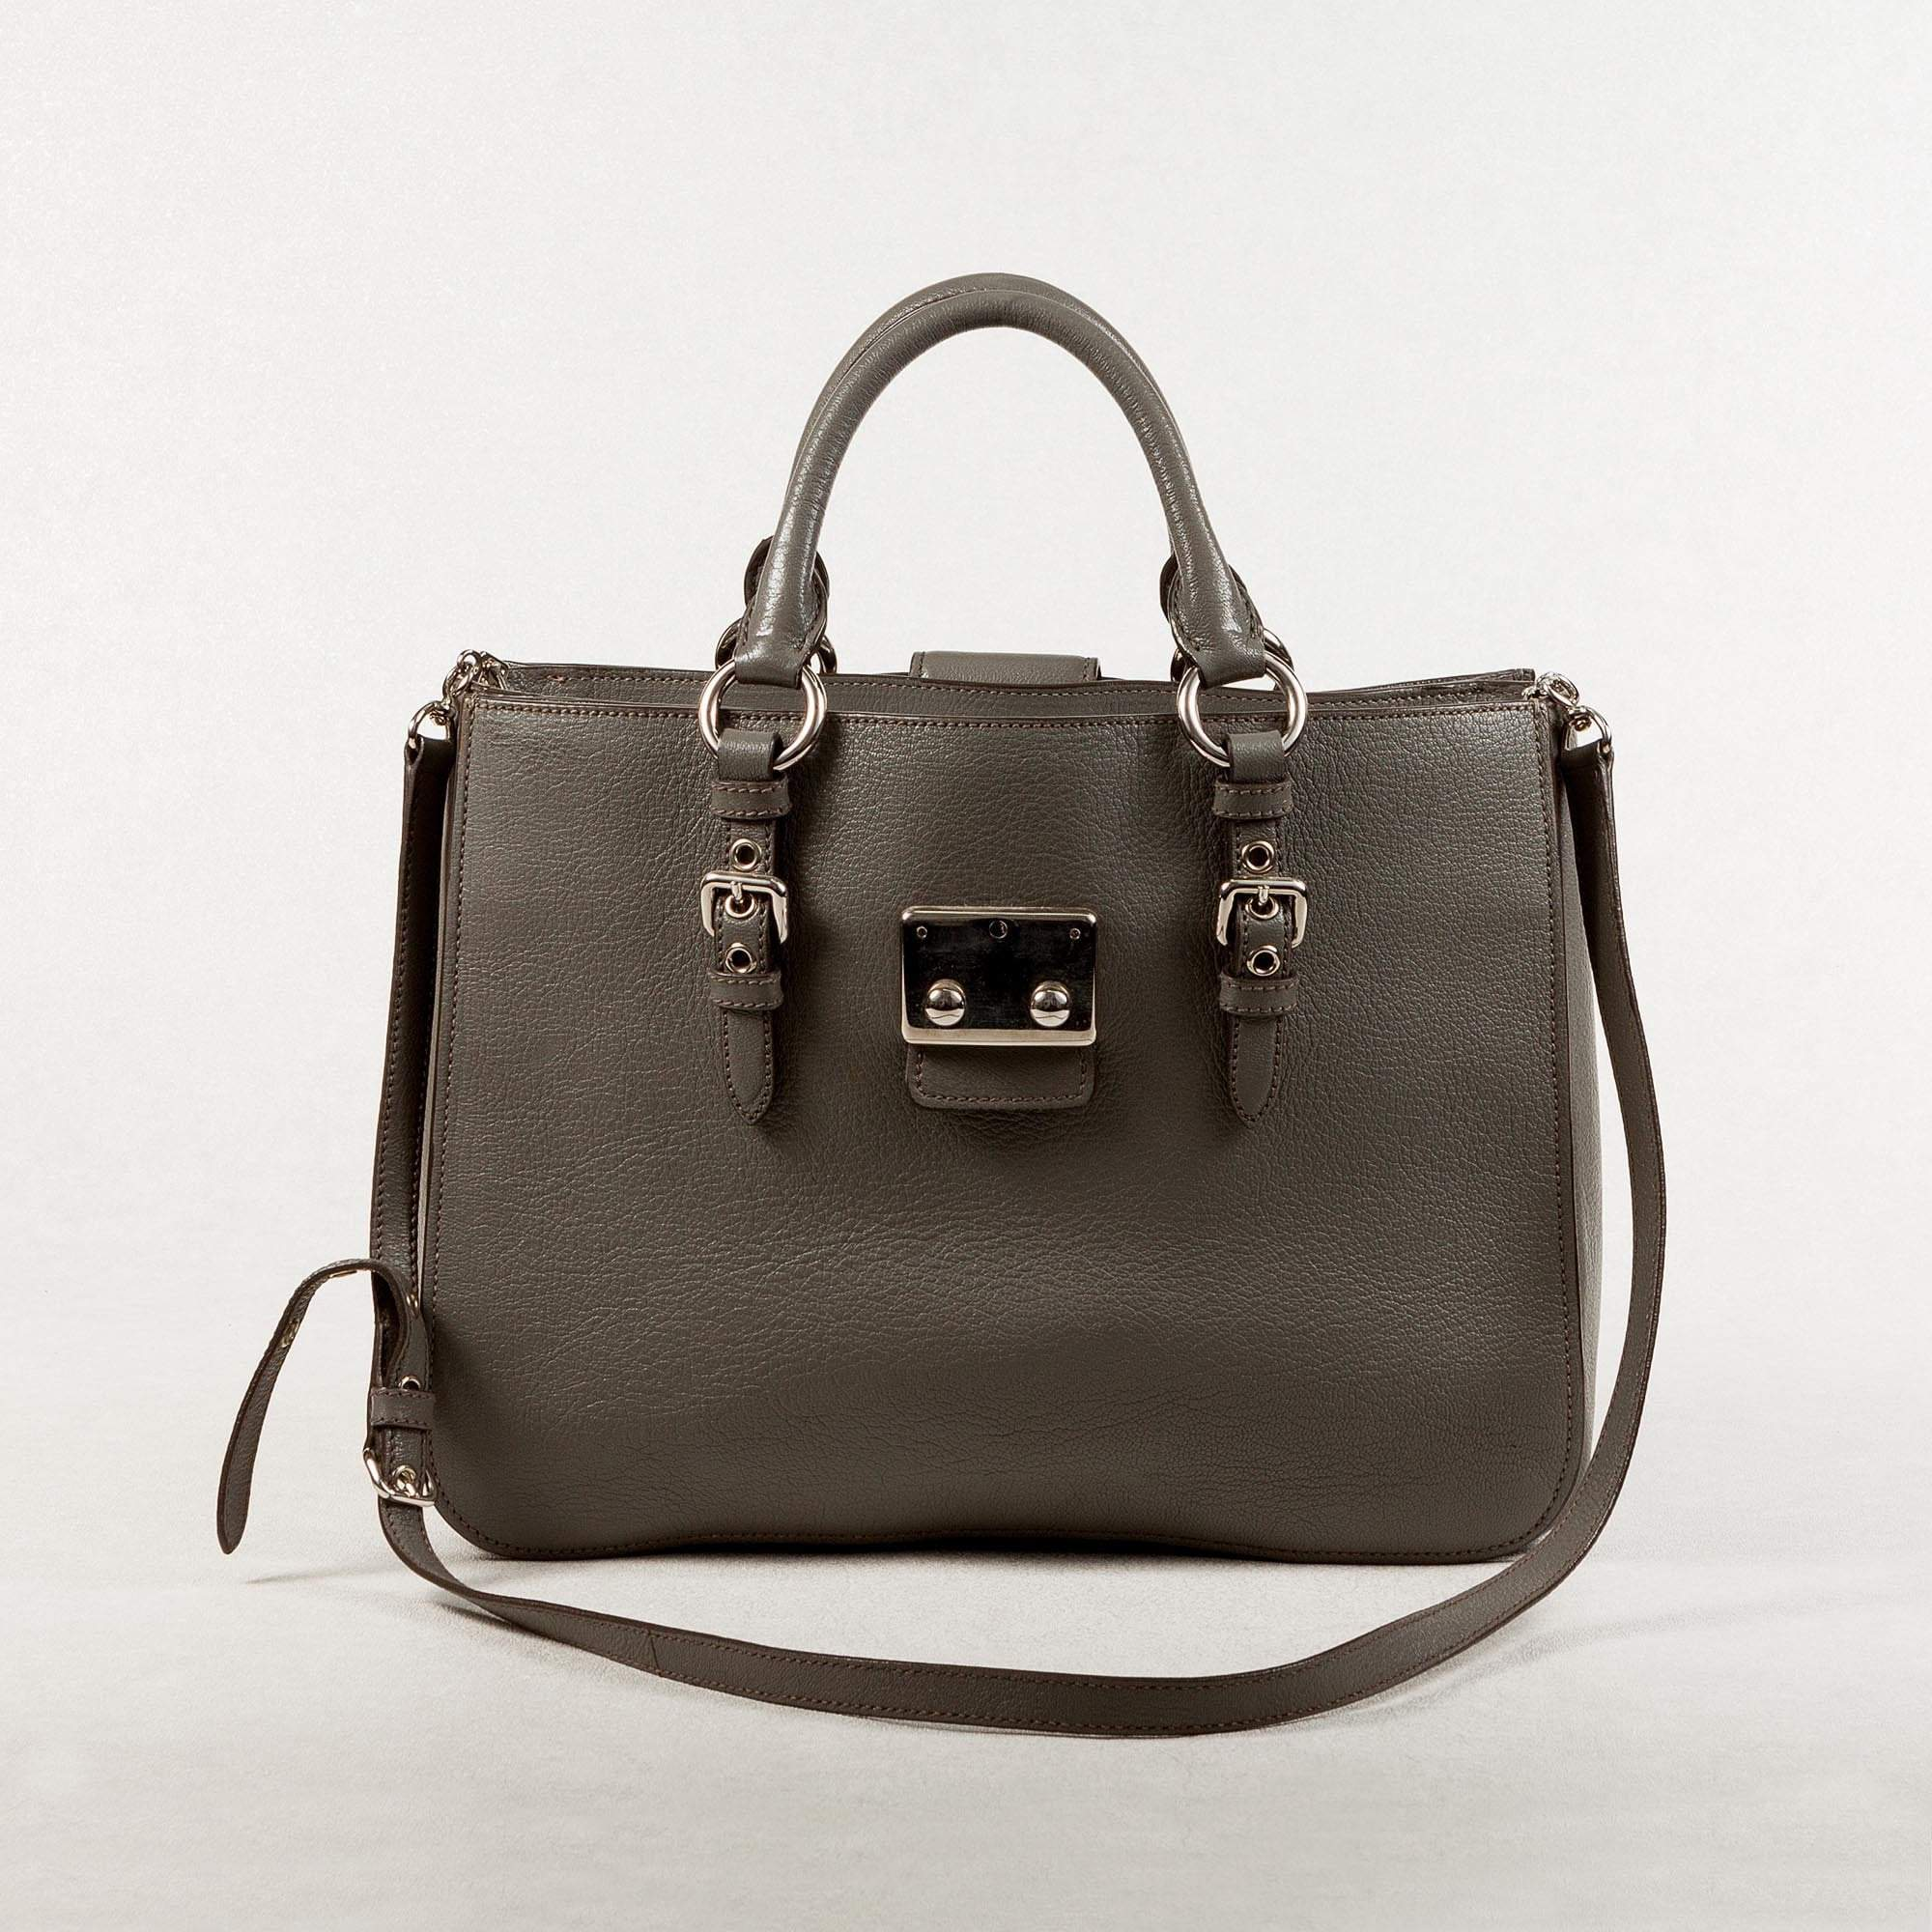 Miu Miu Gray Leather Hand Bag